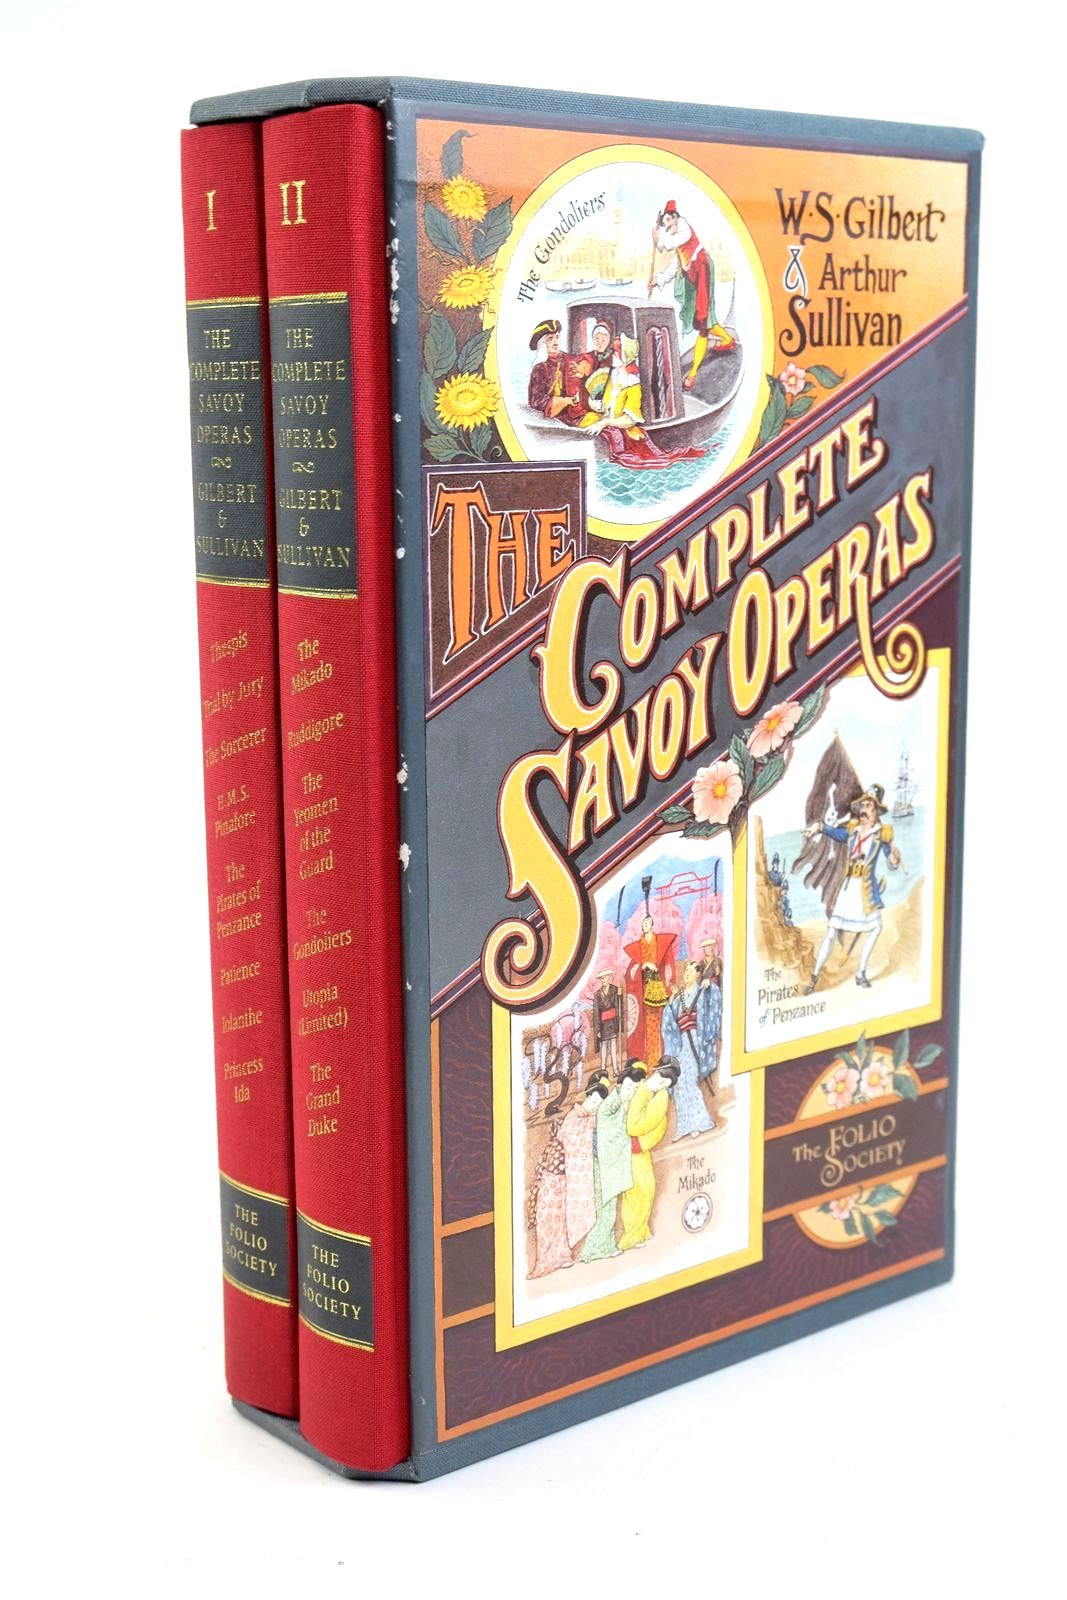 Photo of THE COMPLETE SAVOY OPERAS (TWO VOLUMES) written by Gilbert, W.S. Sullivan, Arthur published by Folio Society (STOCK CODE: 1321568)  for sale by Stella & Rose's Books